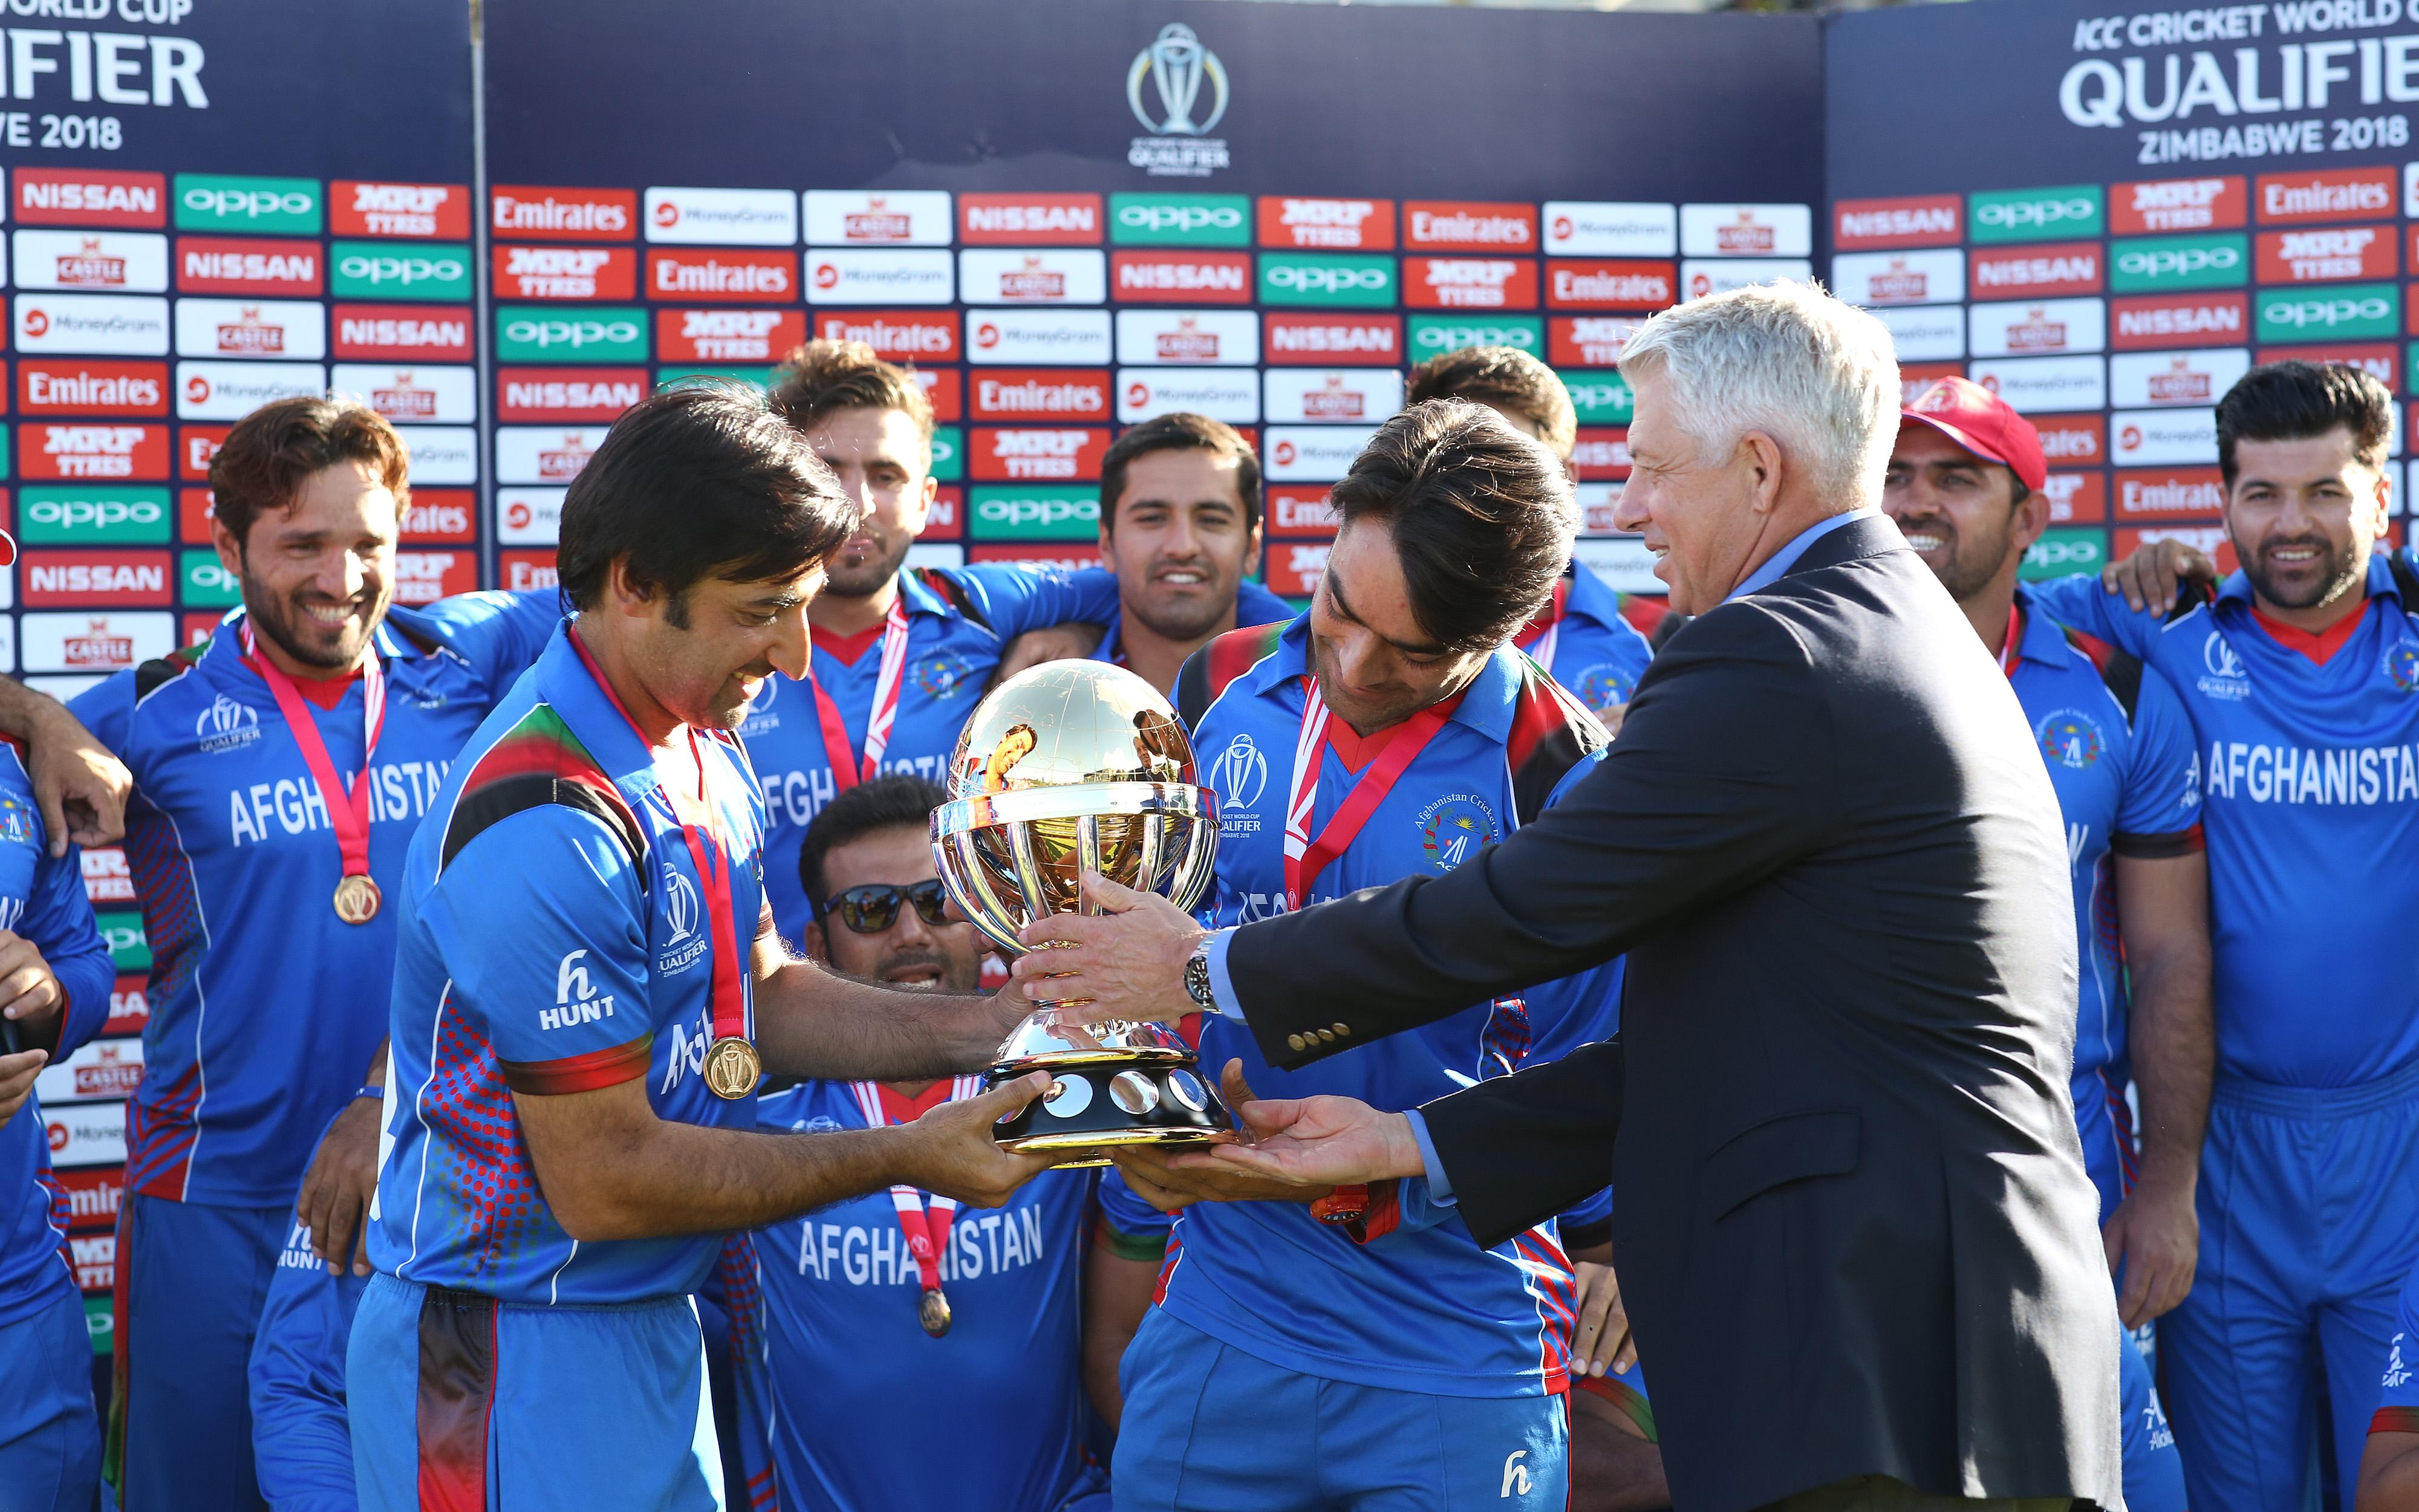 Afghanistan Win Icc Cricket World Cup Qualifier